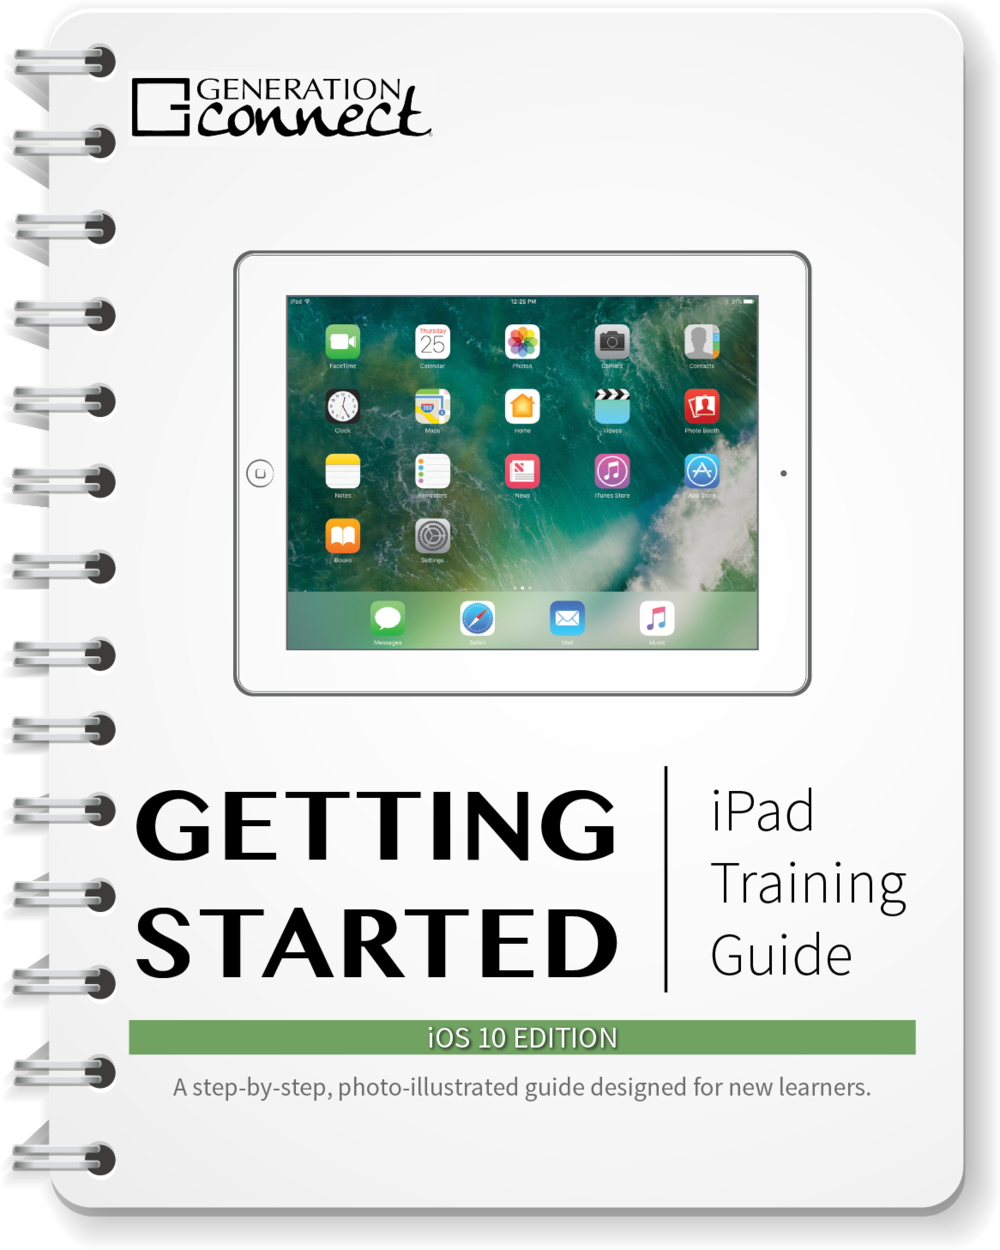 Click on the image to learn about the iPad Getting Started Guide.